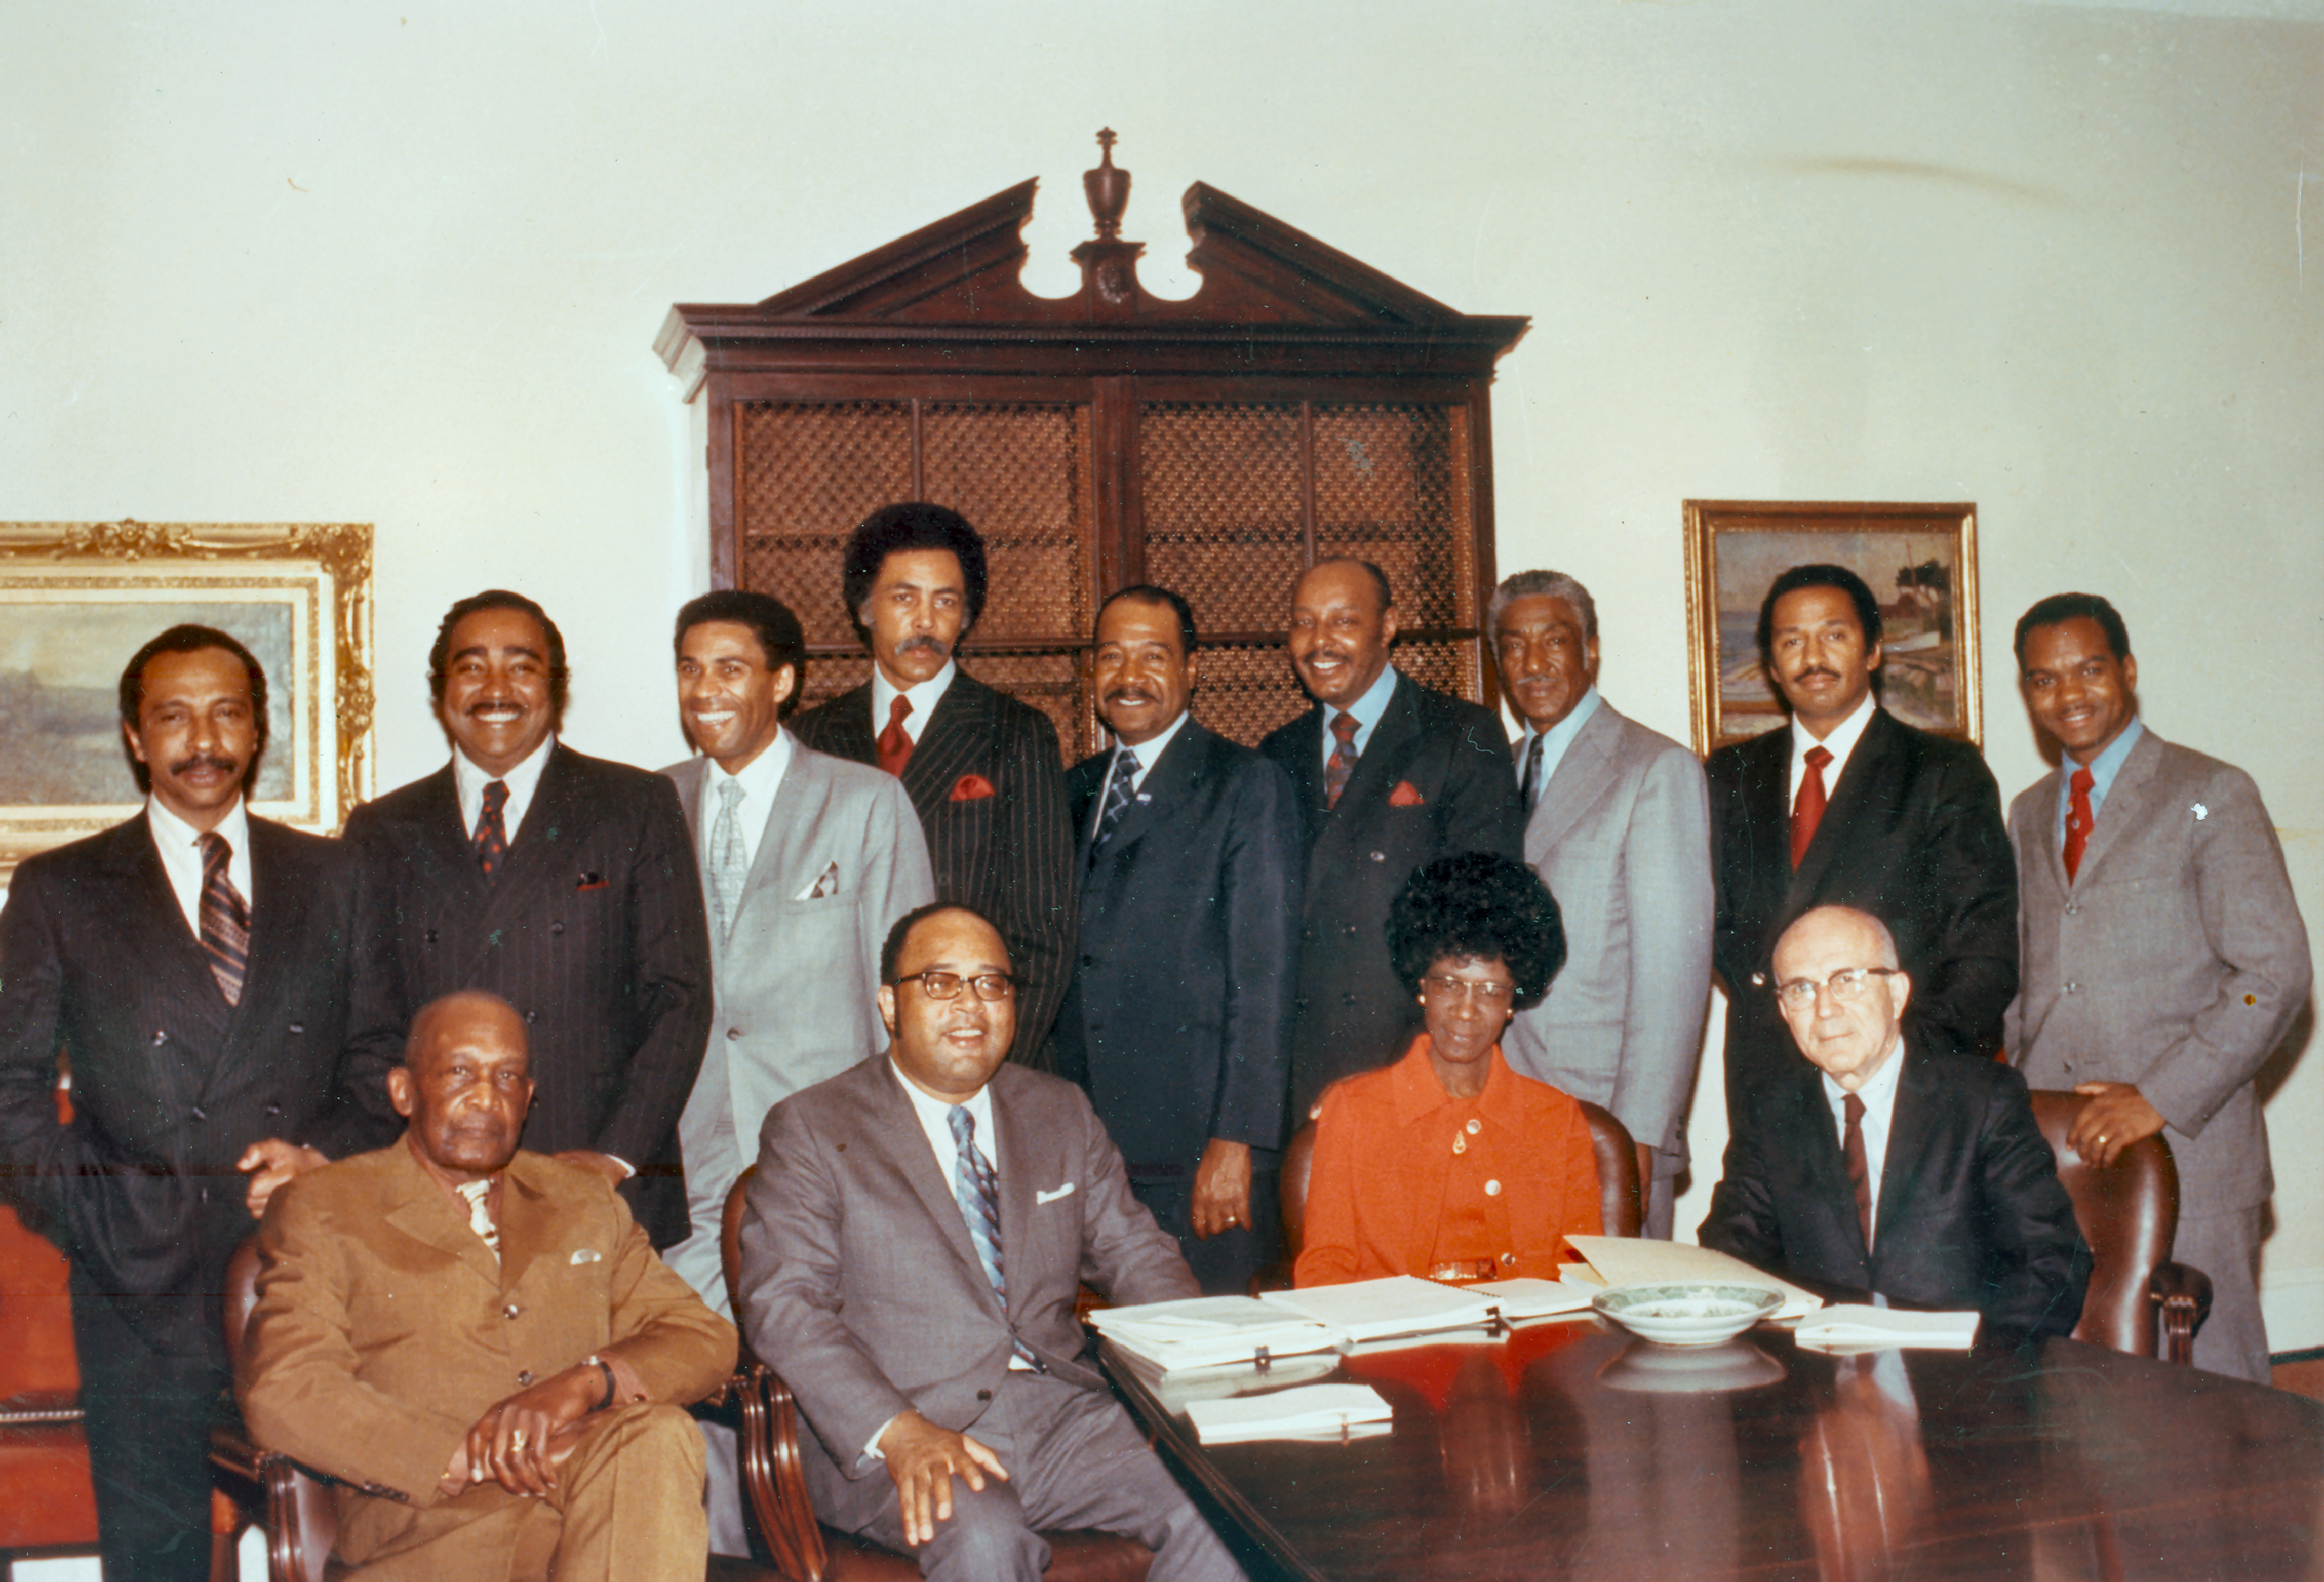 Founding members of the Congressional Black Caucus. L-R: Parren Mitchell, Charles Rangel, Bill Clay, Ron Dellums, George W. Collins, Louis Stokes, Ralph Metcalfe, John Conyers, and Walter Fauntroy. Seated L-R: Robert N.C. Nix, Sr., Charles Diggs, Shirley Chisholm, and Augustus F. Hawkins. Photo: US Congress.